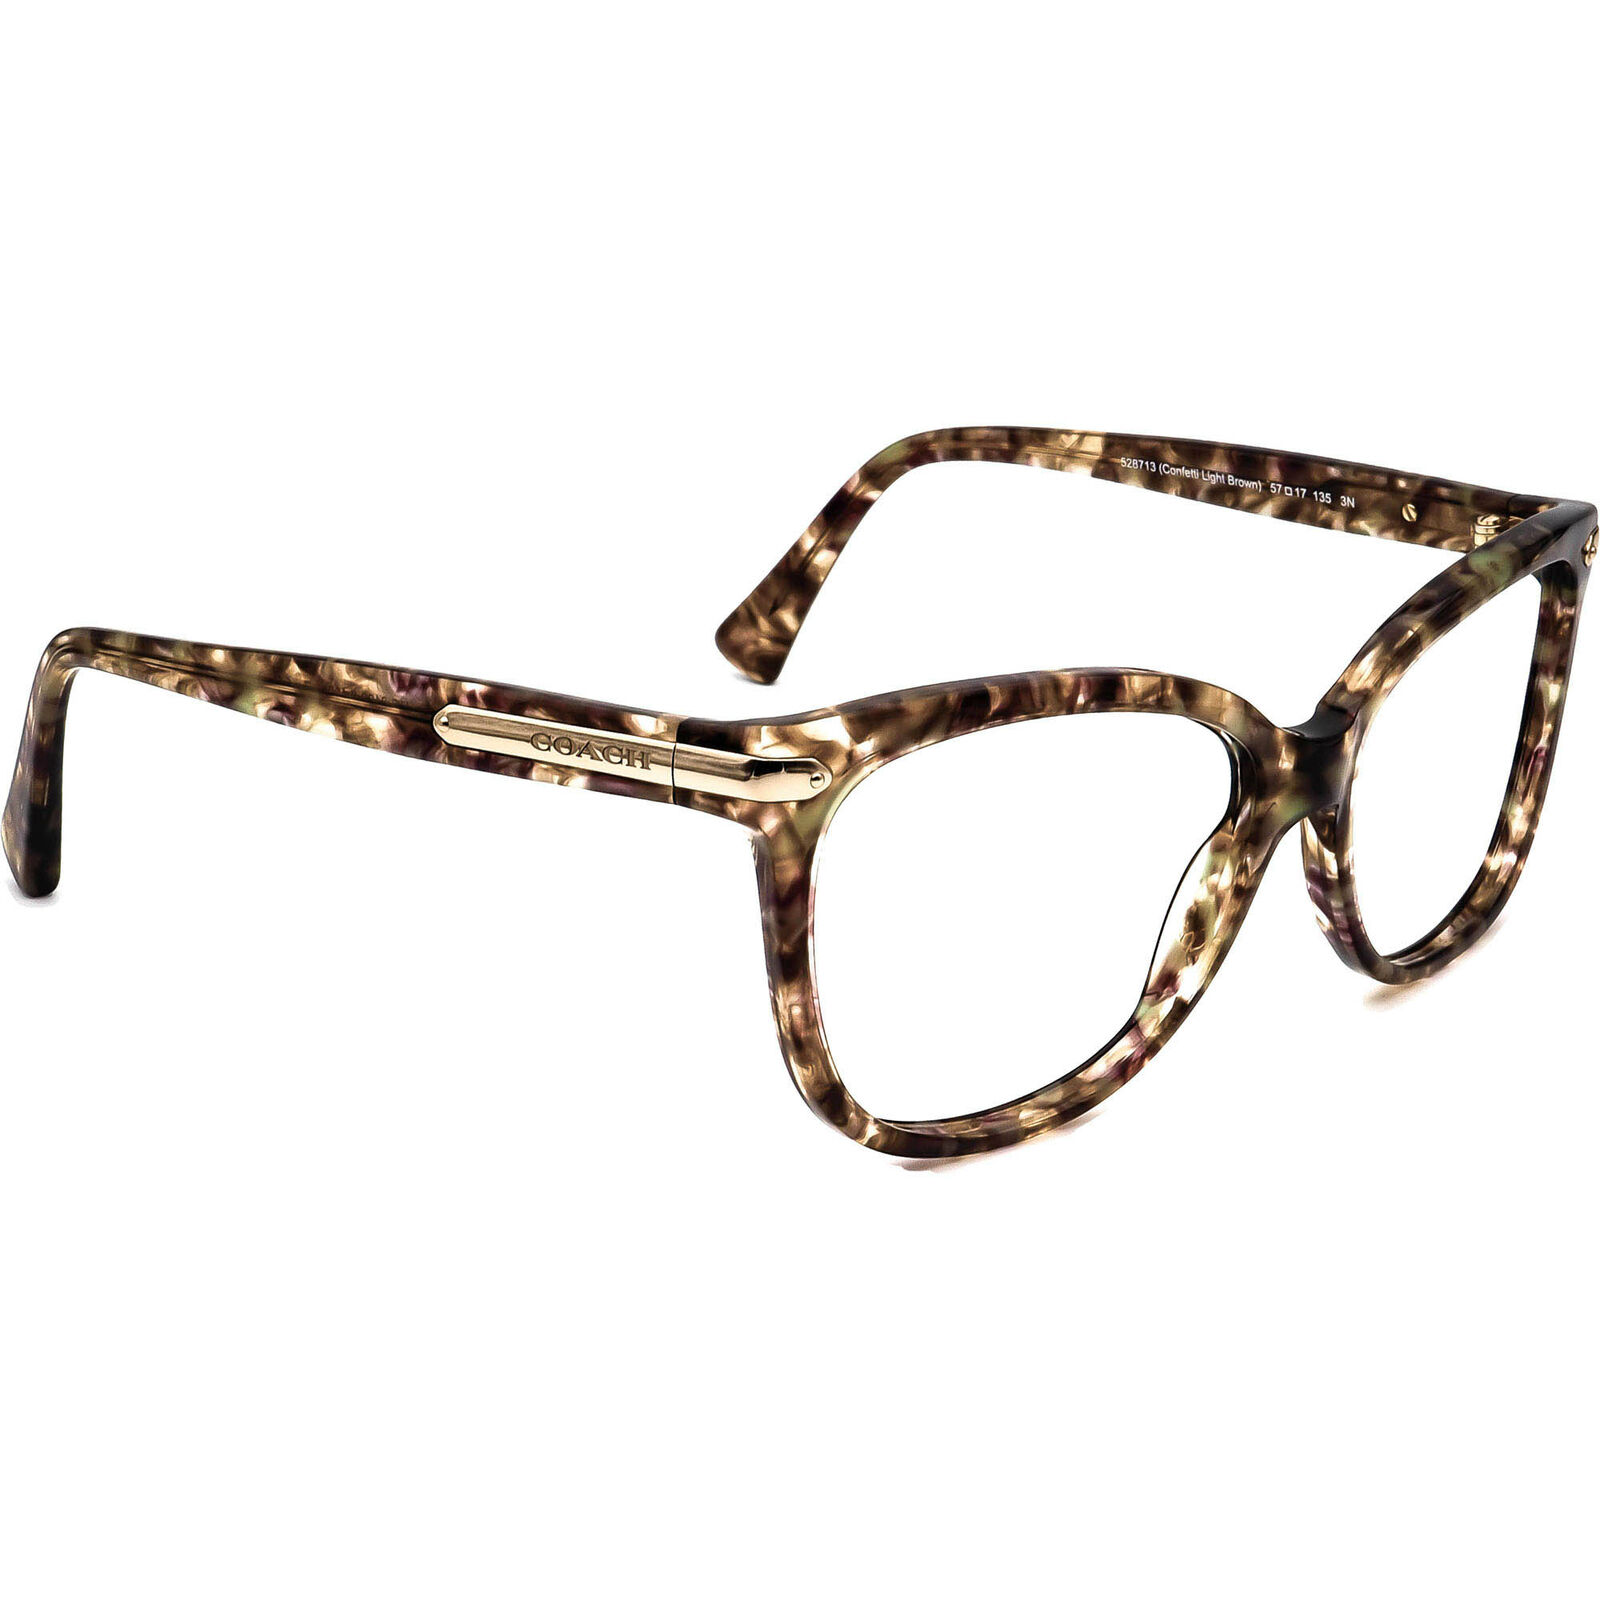 Coach Sunglasses Frame Only HC 8132 (L109) 528713 Confetti Light Brown 57 mm